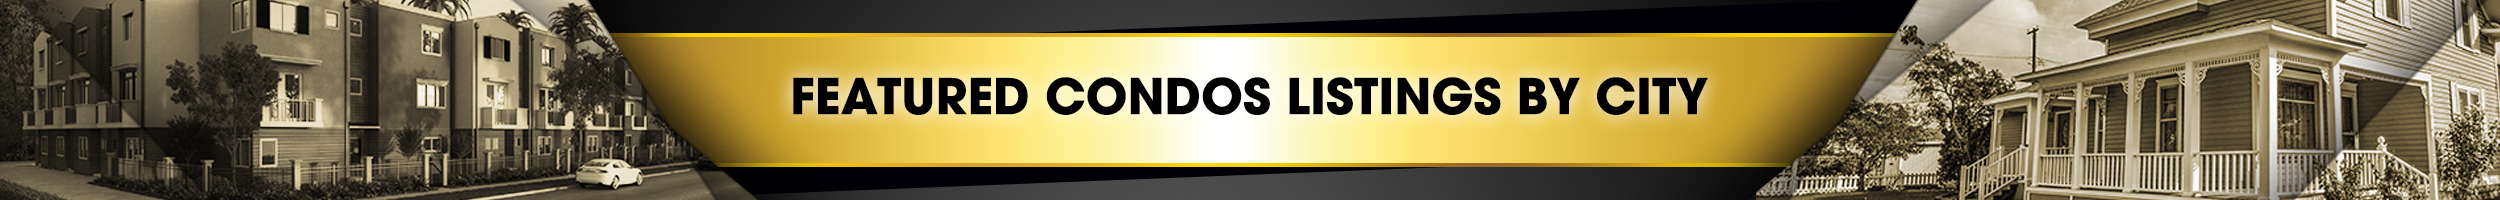 FEATURED CONDOS LISTINGS BY CITY